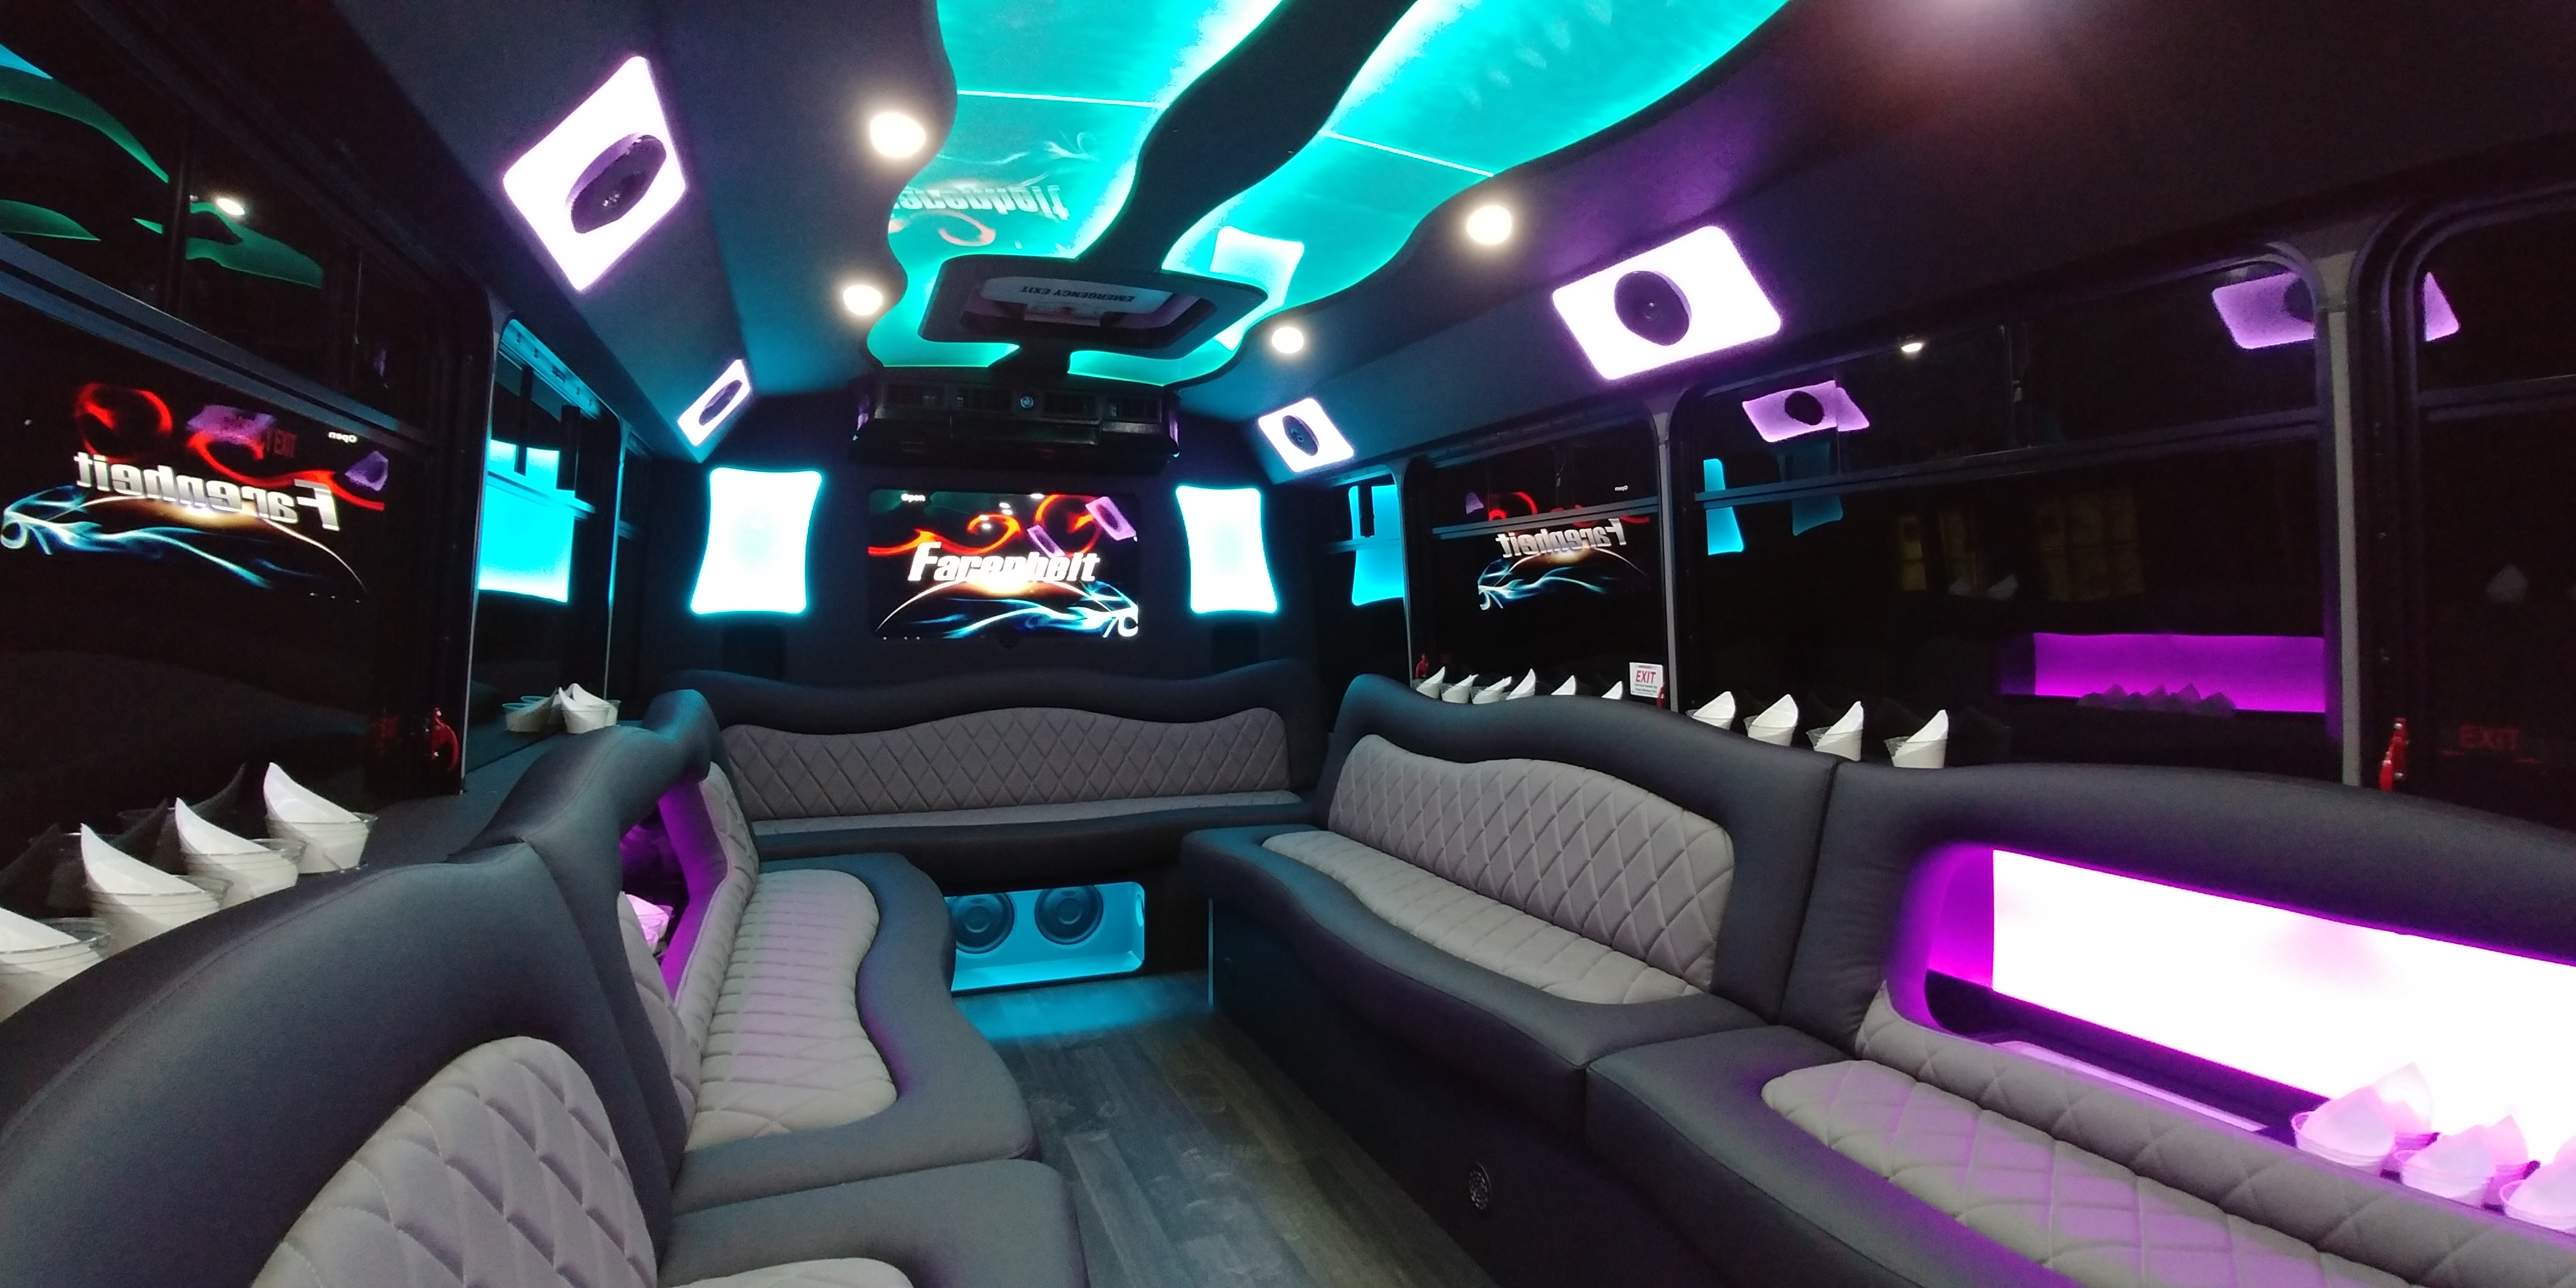 18 Passenger Luxury Limo Bus Nighttime Interior 3